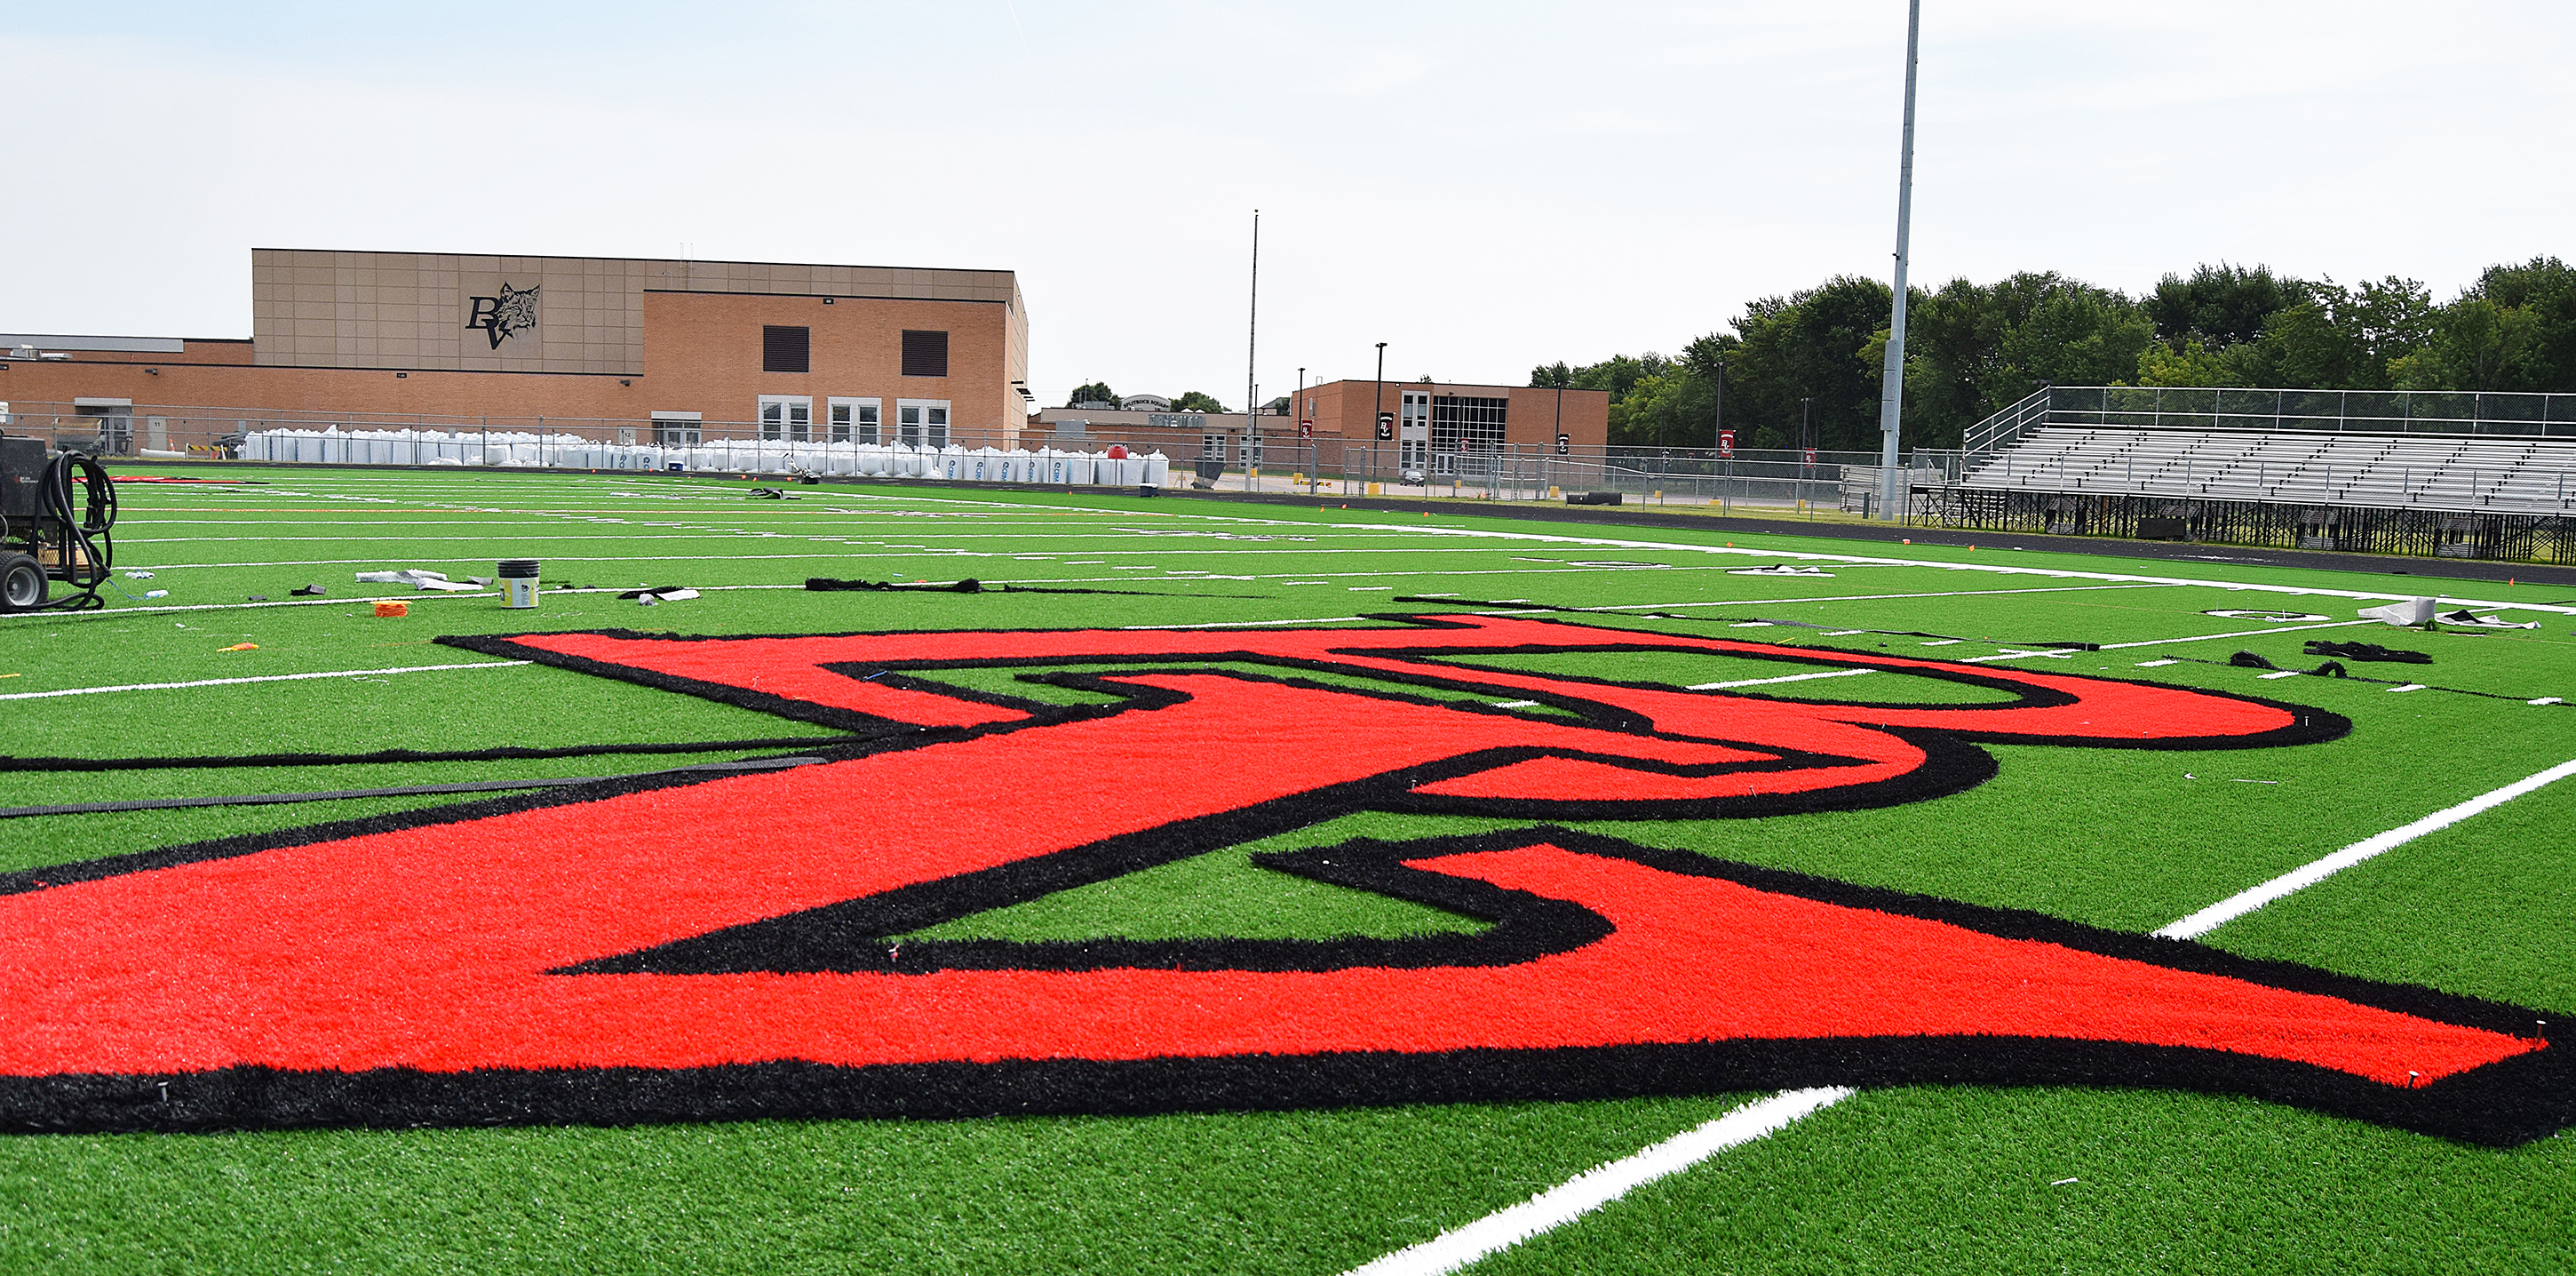 "The finishing touches on the artificial turf at the Brandon Valley Stadium got underway last week. Workers began piecing in the midfield ""BV"" art, sideline yard numbers and ""LYNX"" in each endzone. The first event scheduled on the new turf is the Aug. 21 Lady Lynx-West Central soccer game.<span class=""Apple-converted-space""> <strong>Jill Meier/BV Journal</strong></span>*/"